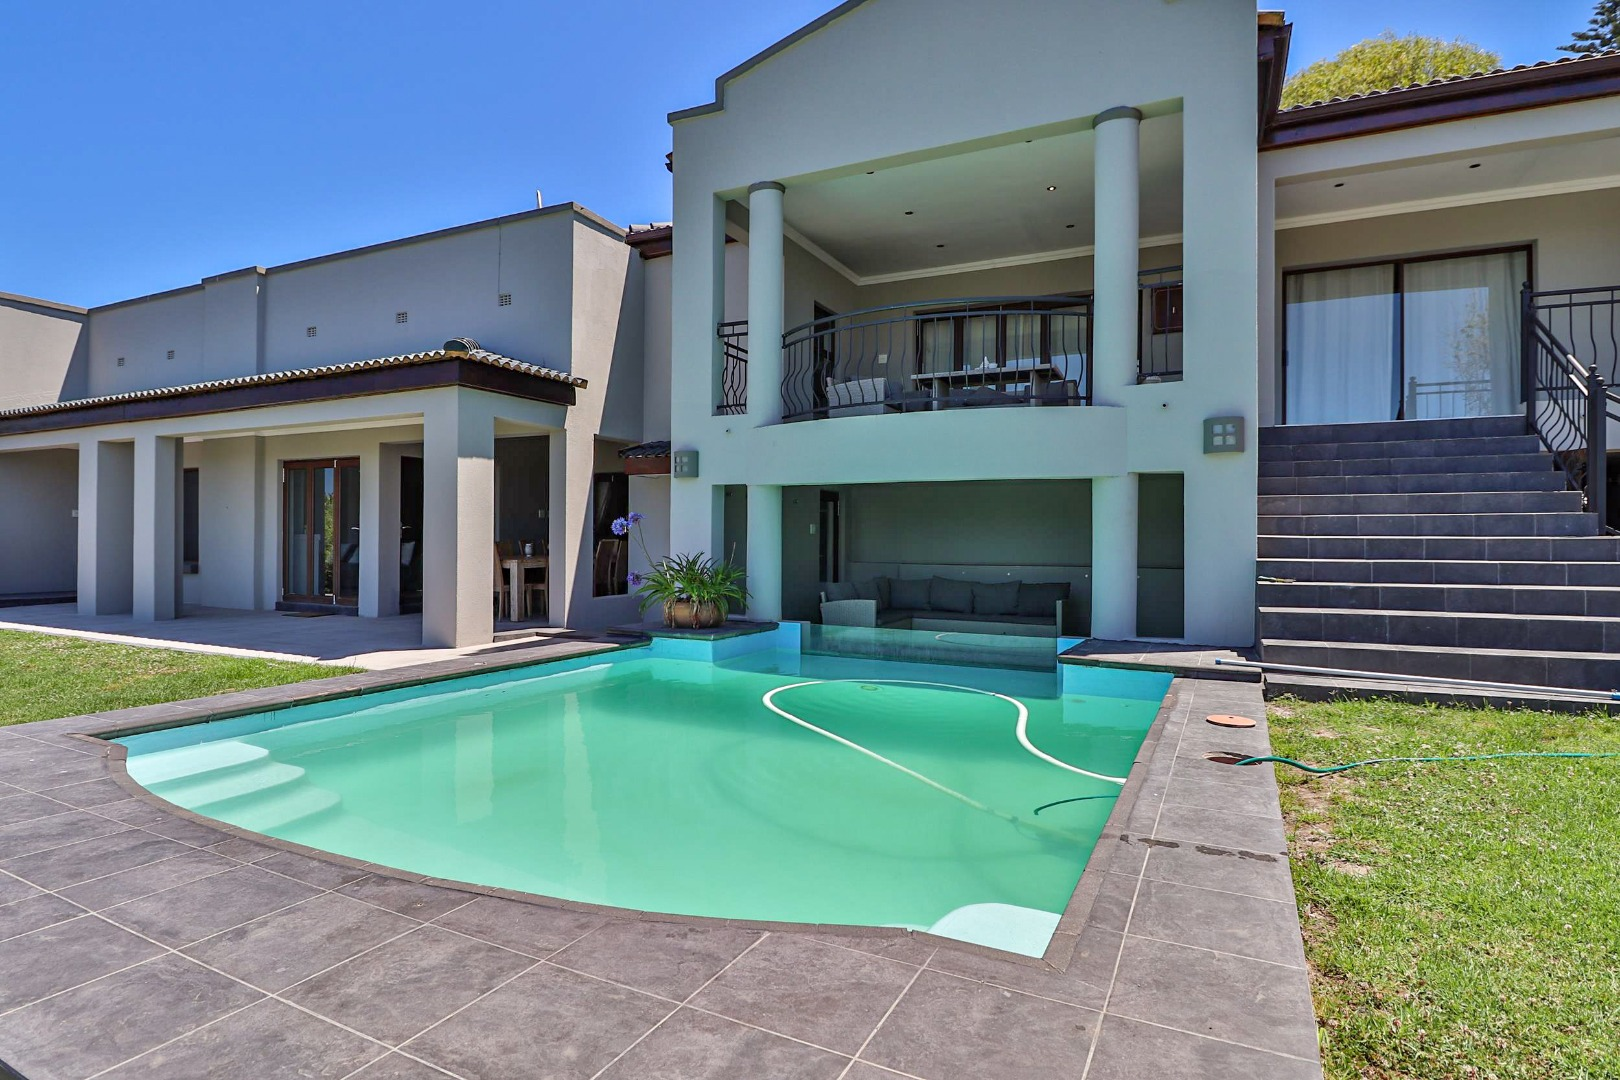 8 Bedroom House For Sale in Paradise